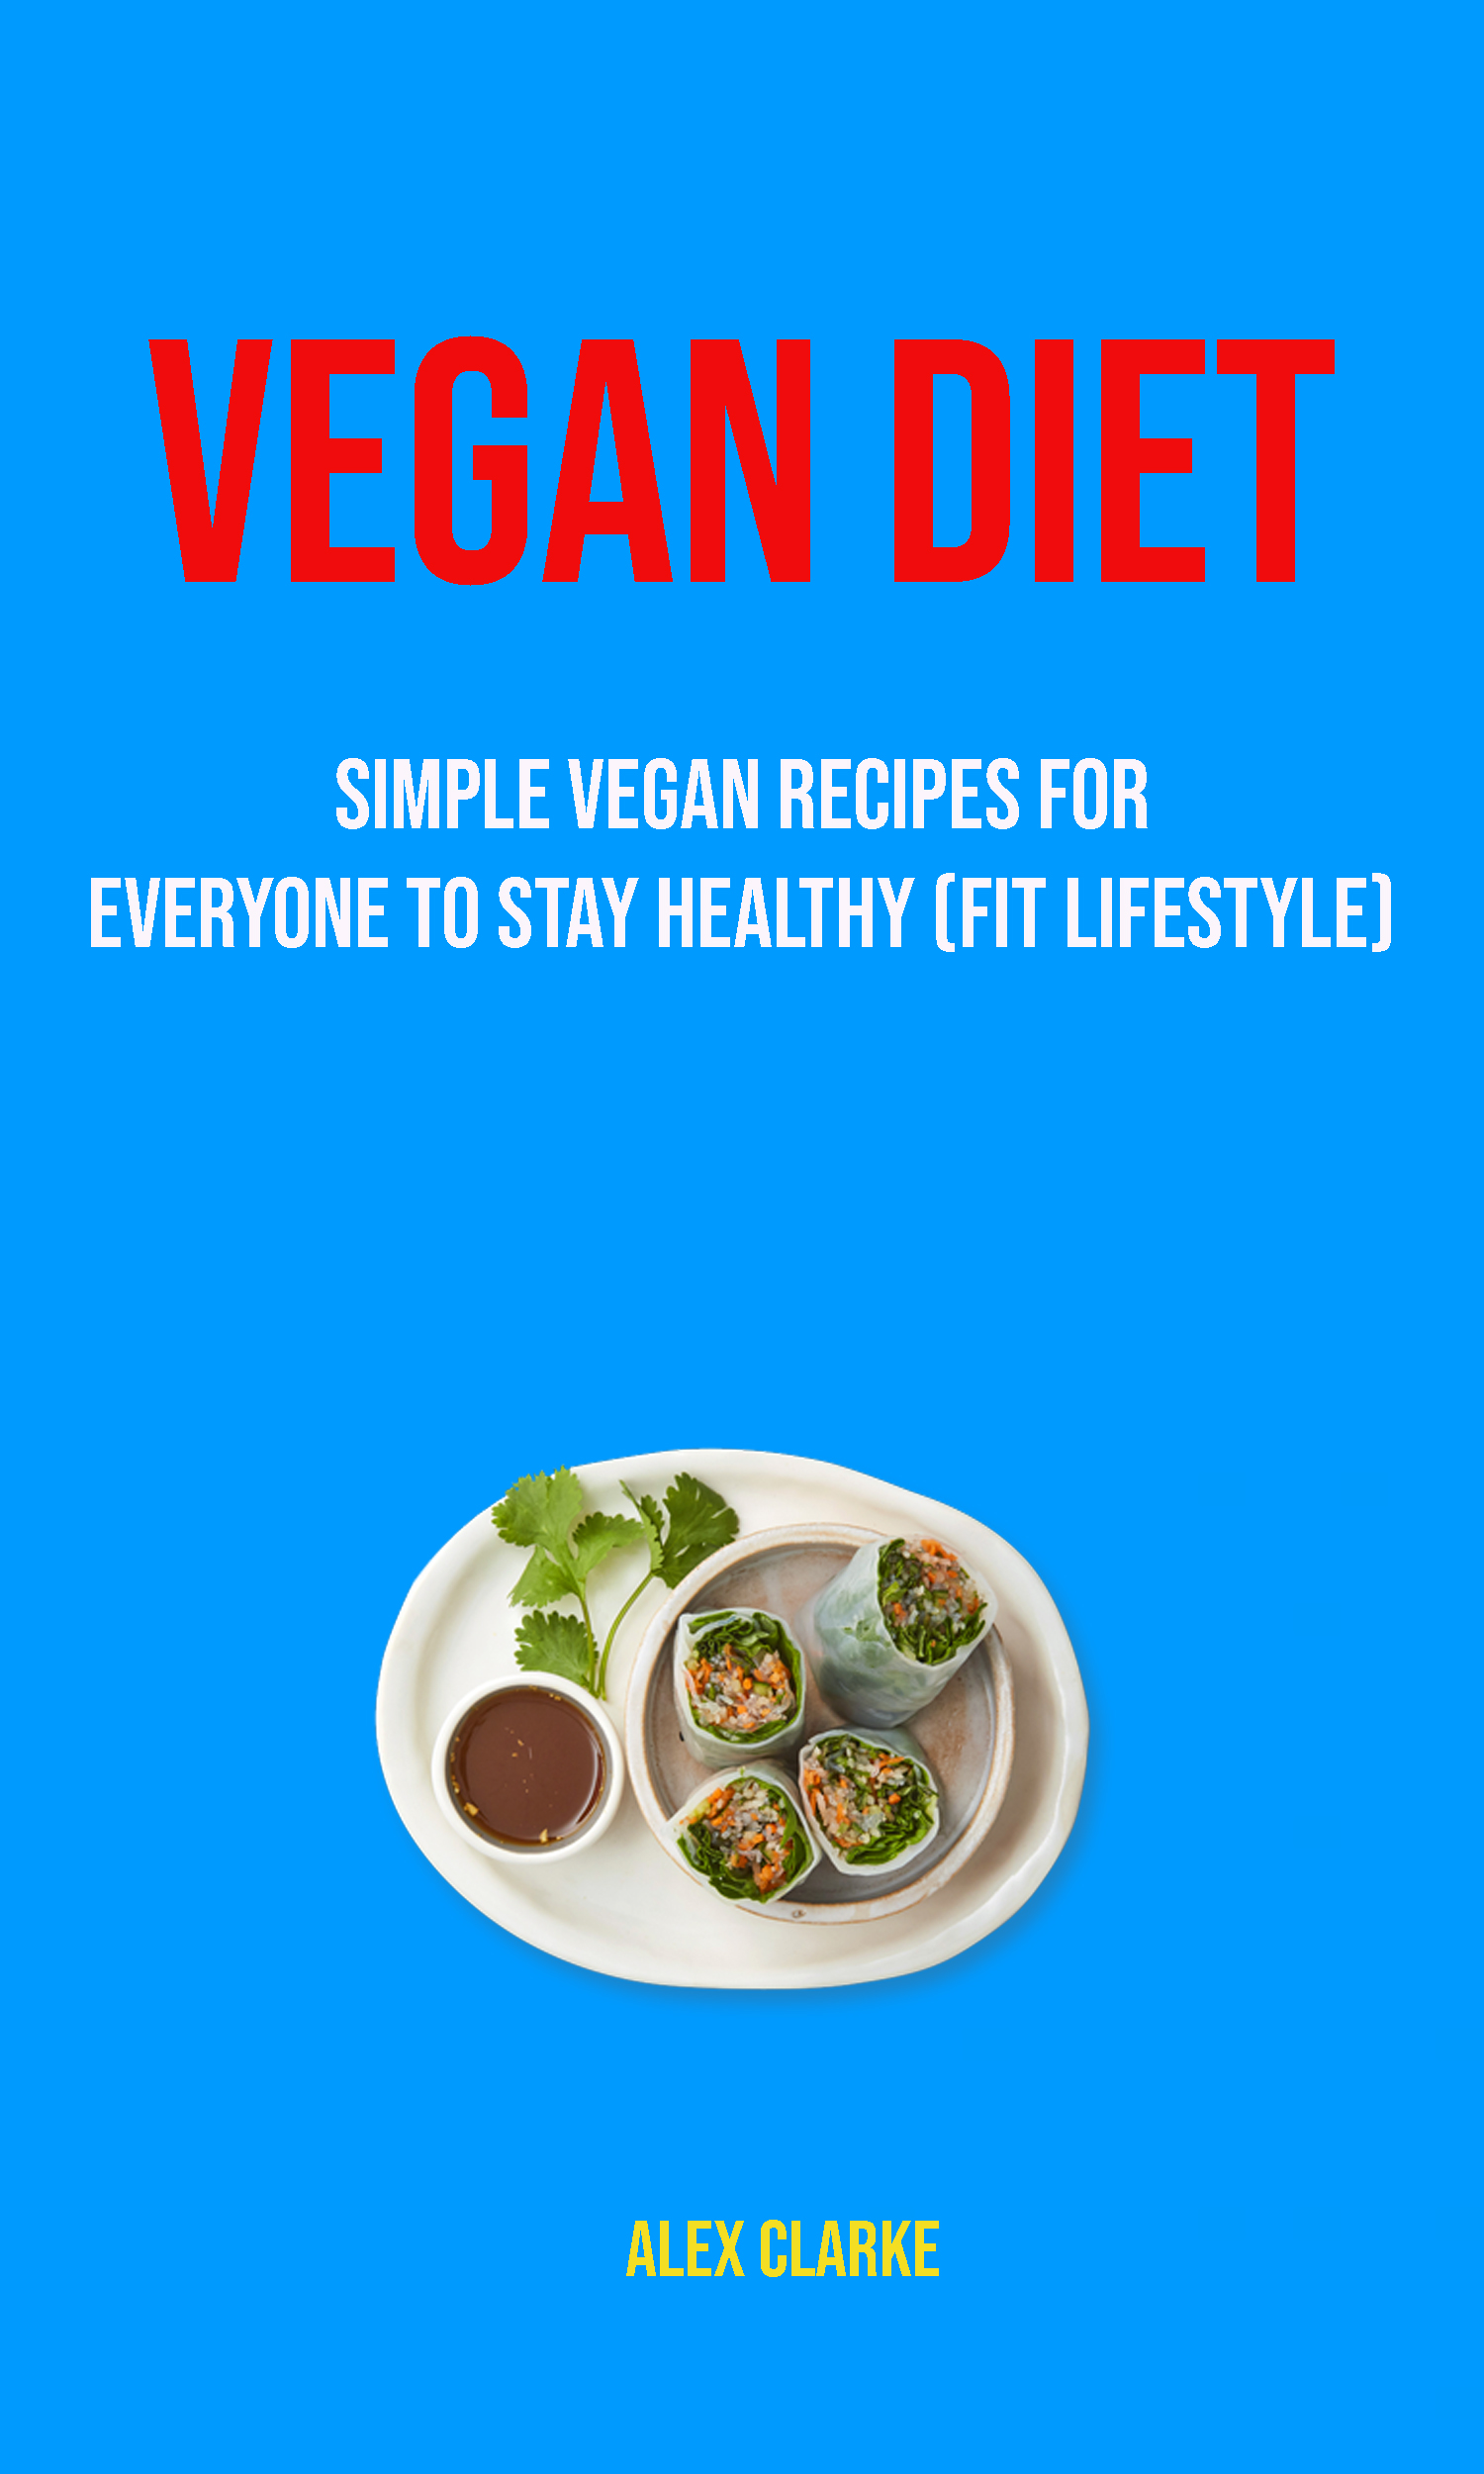 Vegan diet: simple vegan recipes for everyone to stay healthy (fit lifestyle)